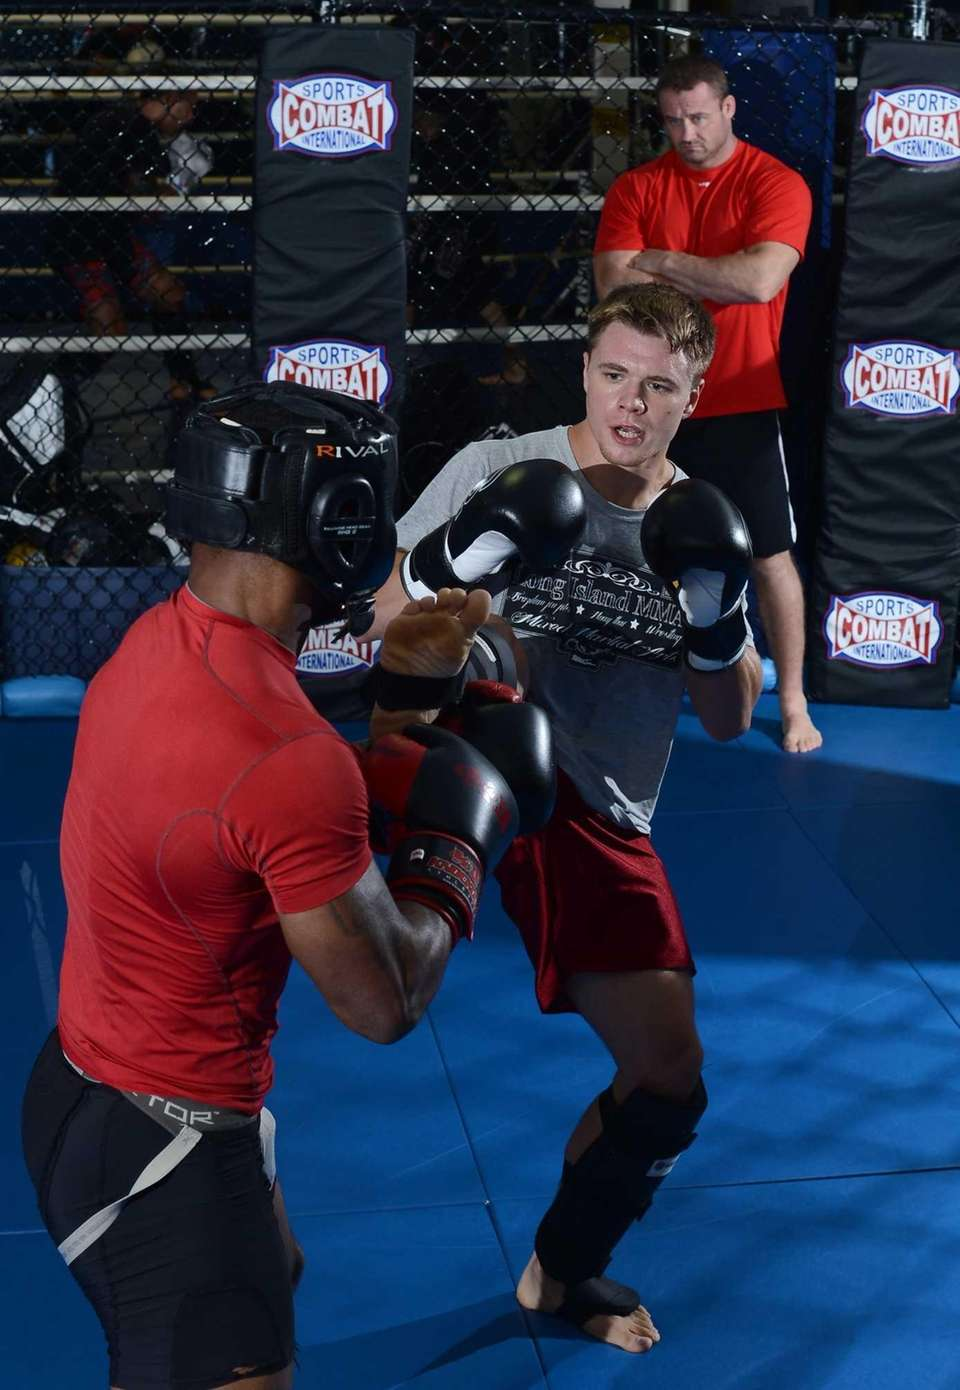 Keith Trimble, center, of Bellmore Kickboxing Academy watches